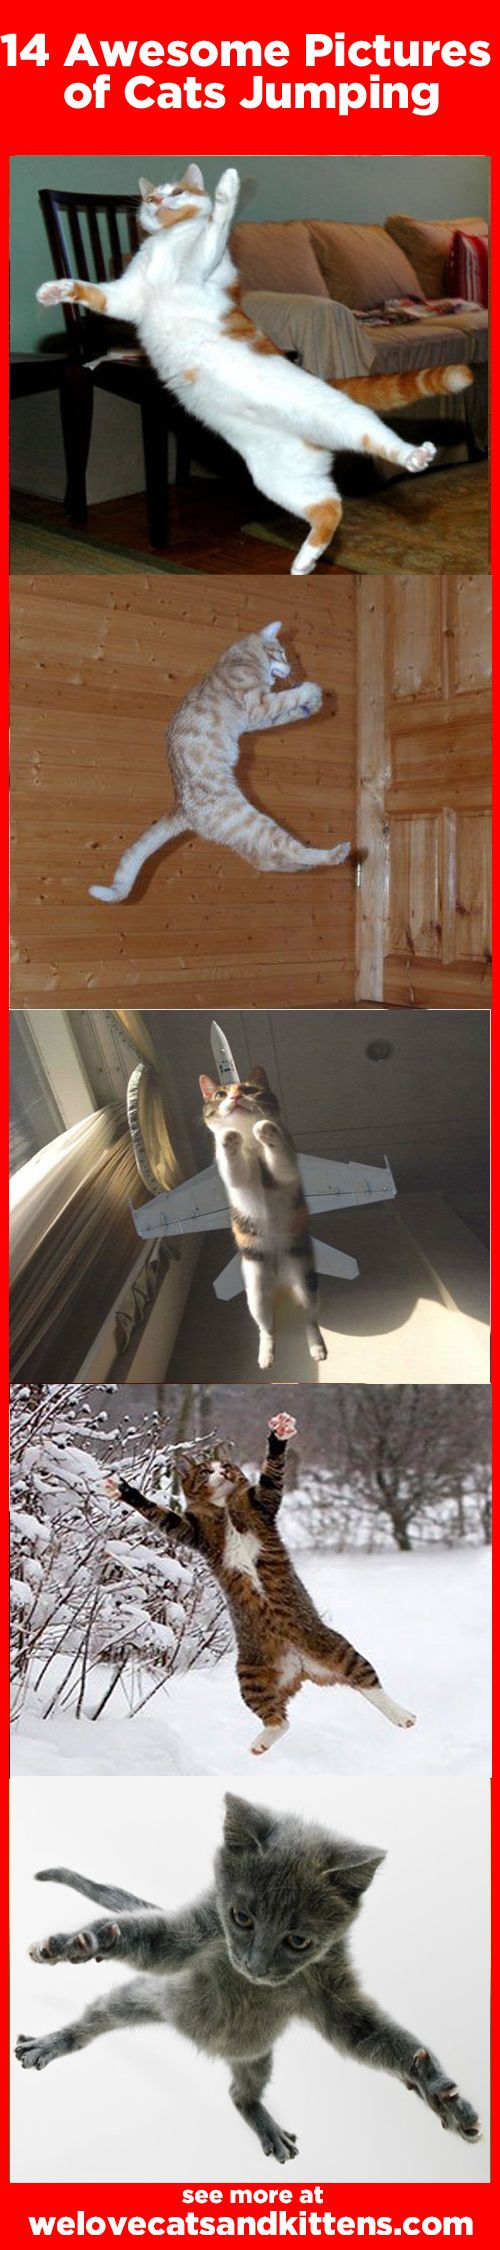 14 Awesome Pictures of Cats Jumping